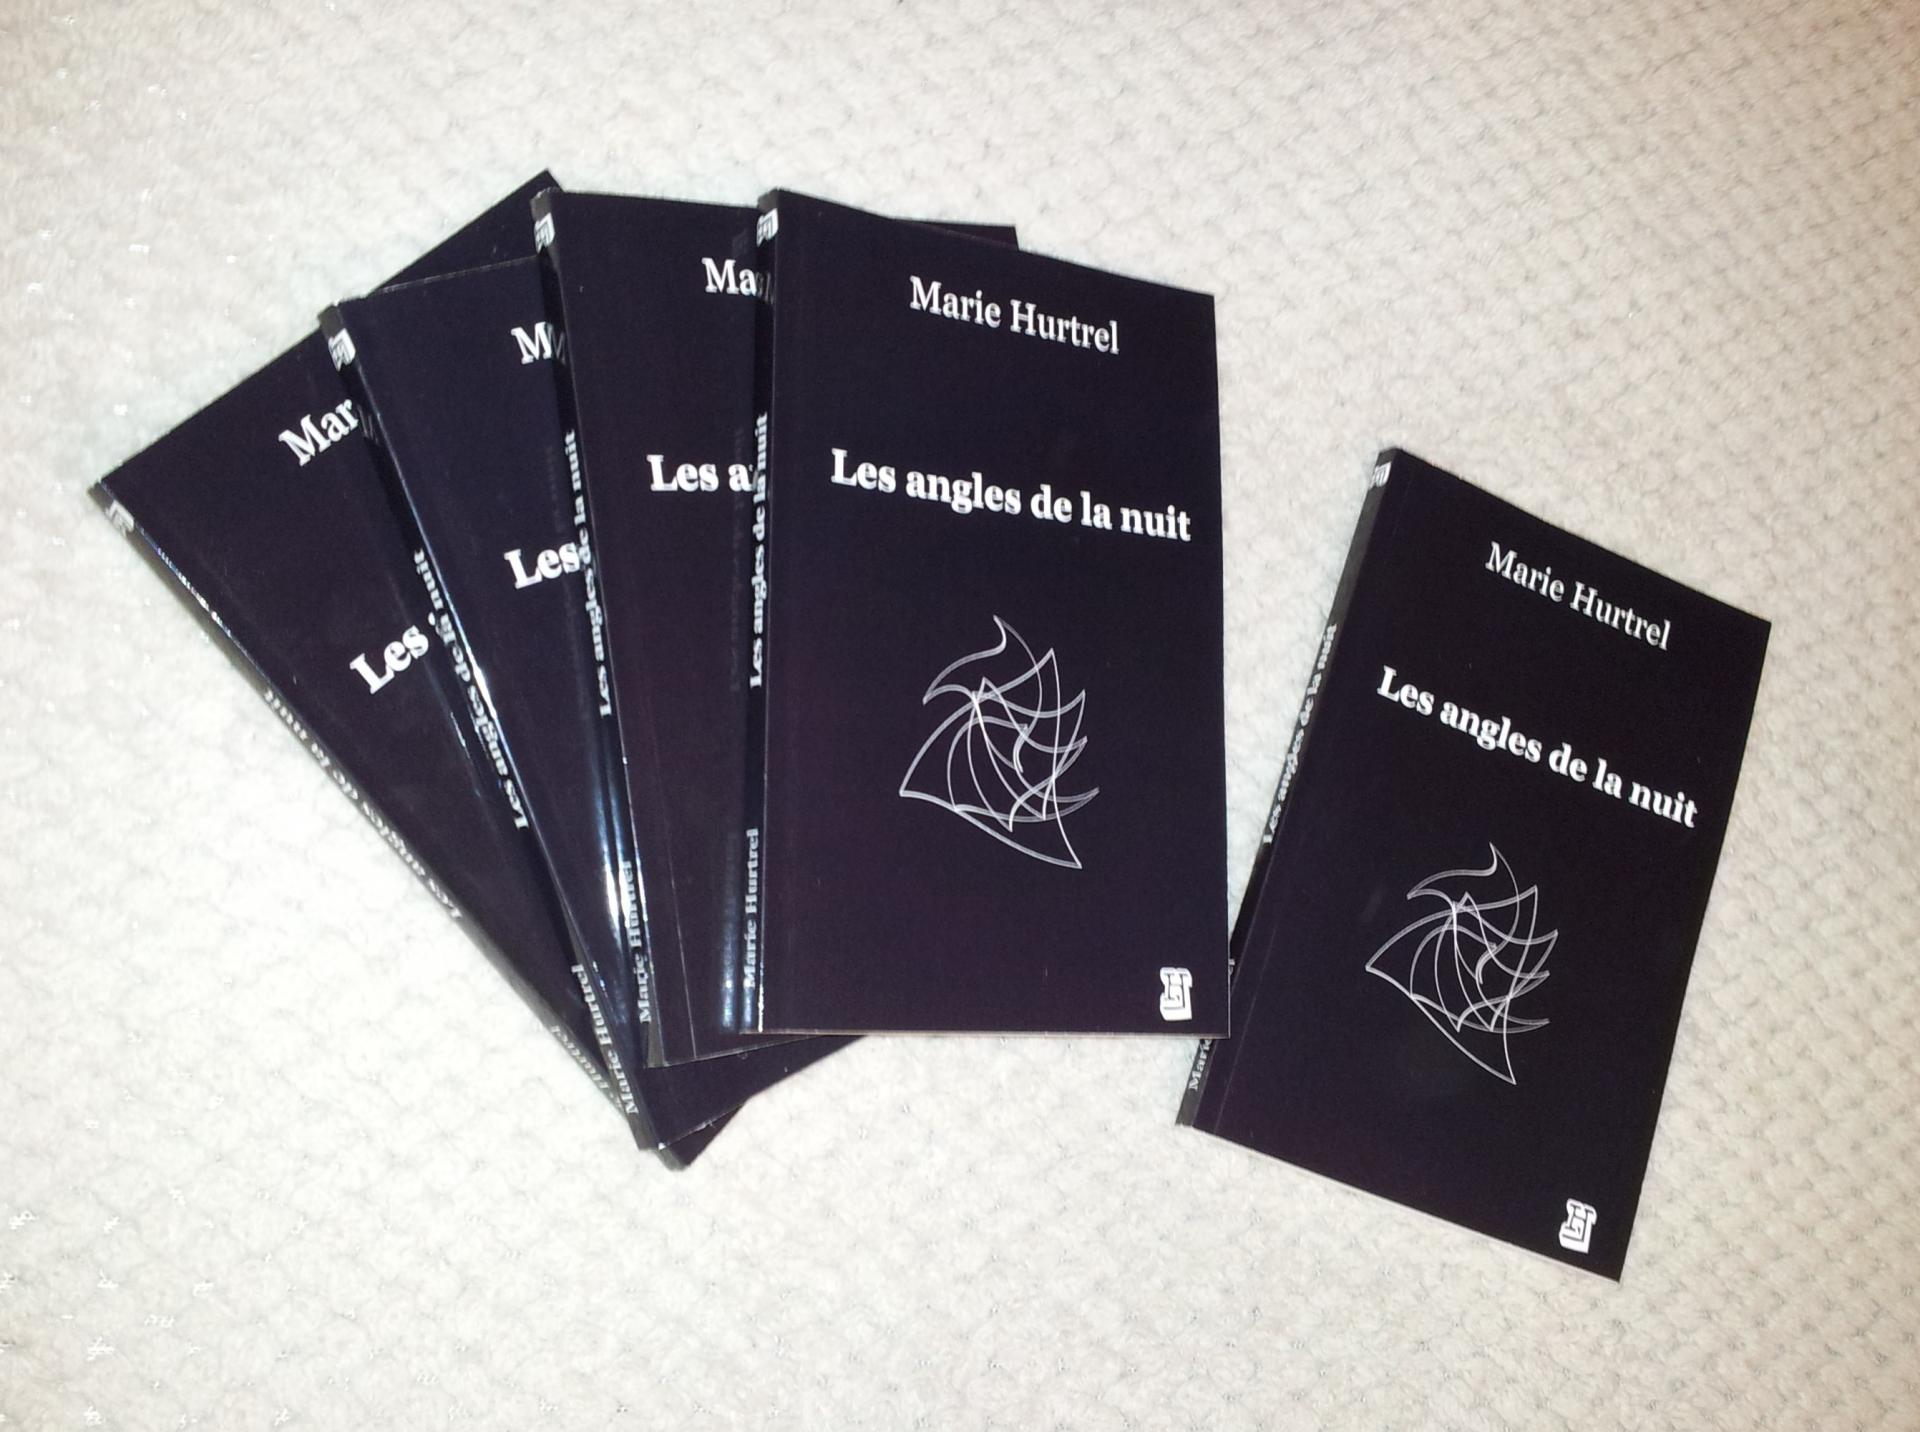 Les angles de la nuit, de Marie Hurtrel